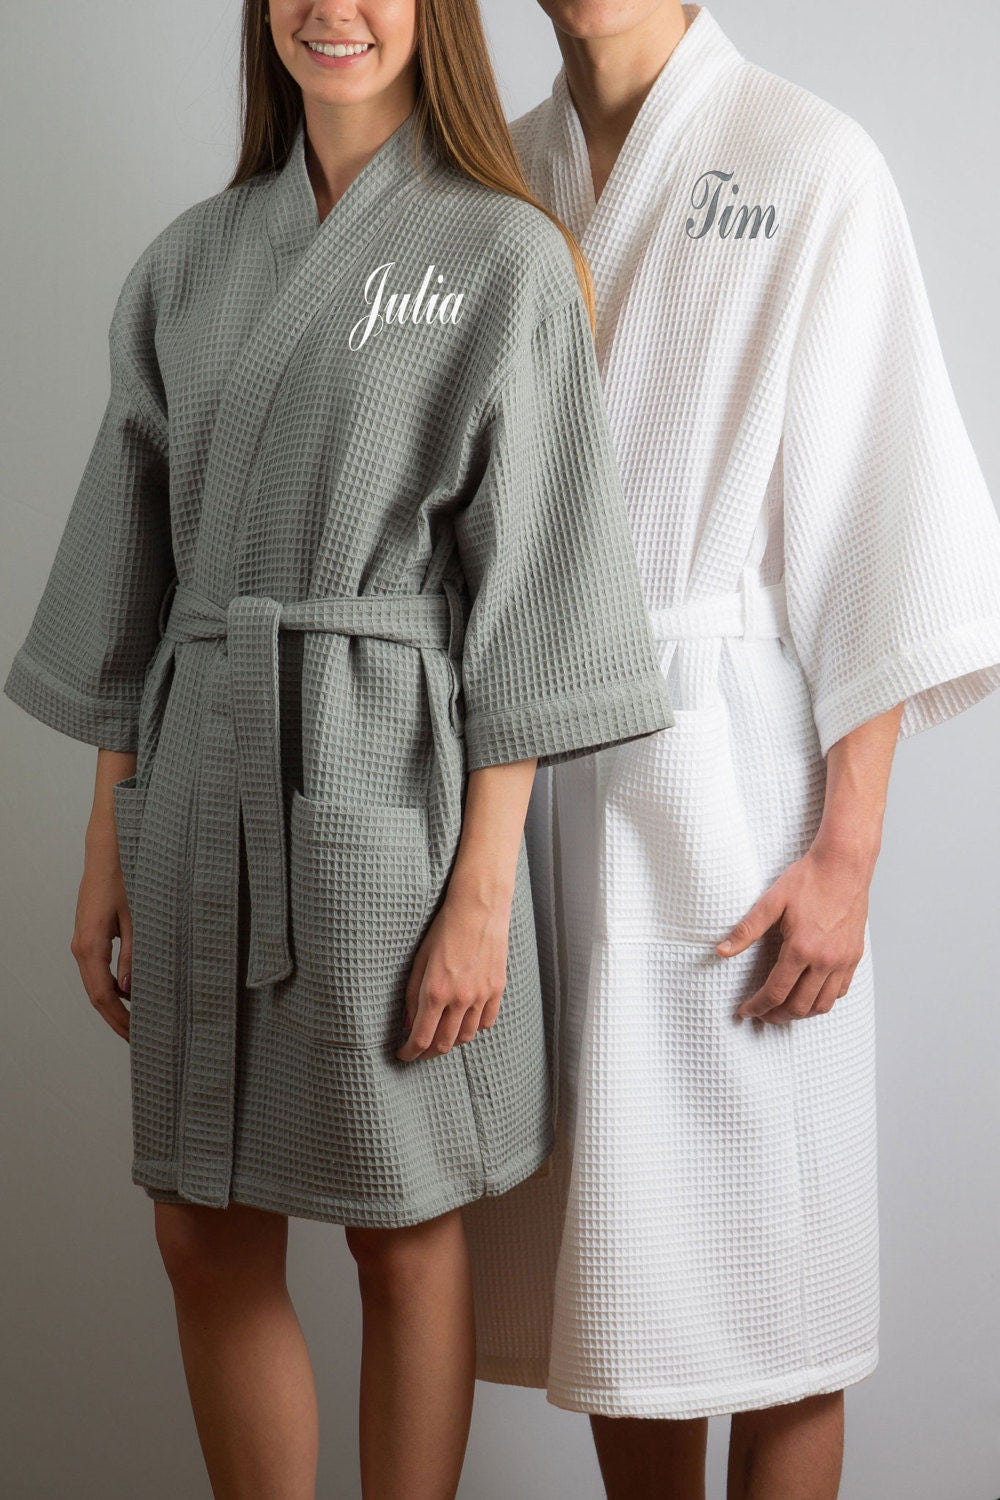 his and hers robes bride and groom gift of 2 matching waffle. Black Bedroom Furniture Sets. Home Design Ideas